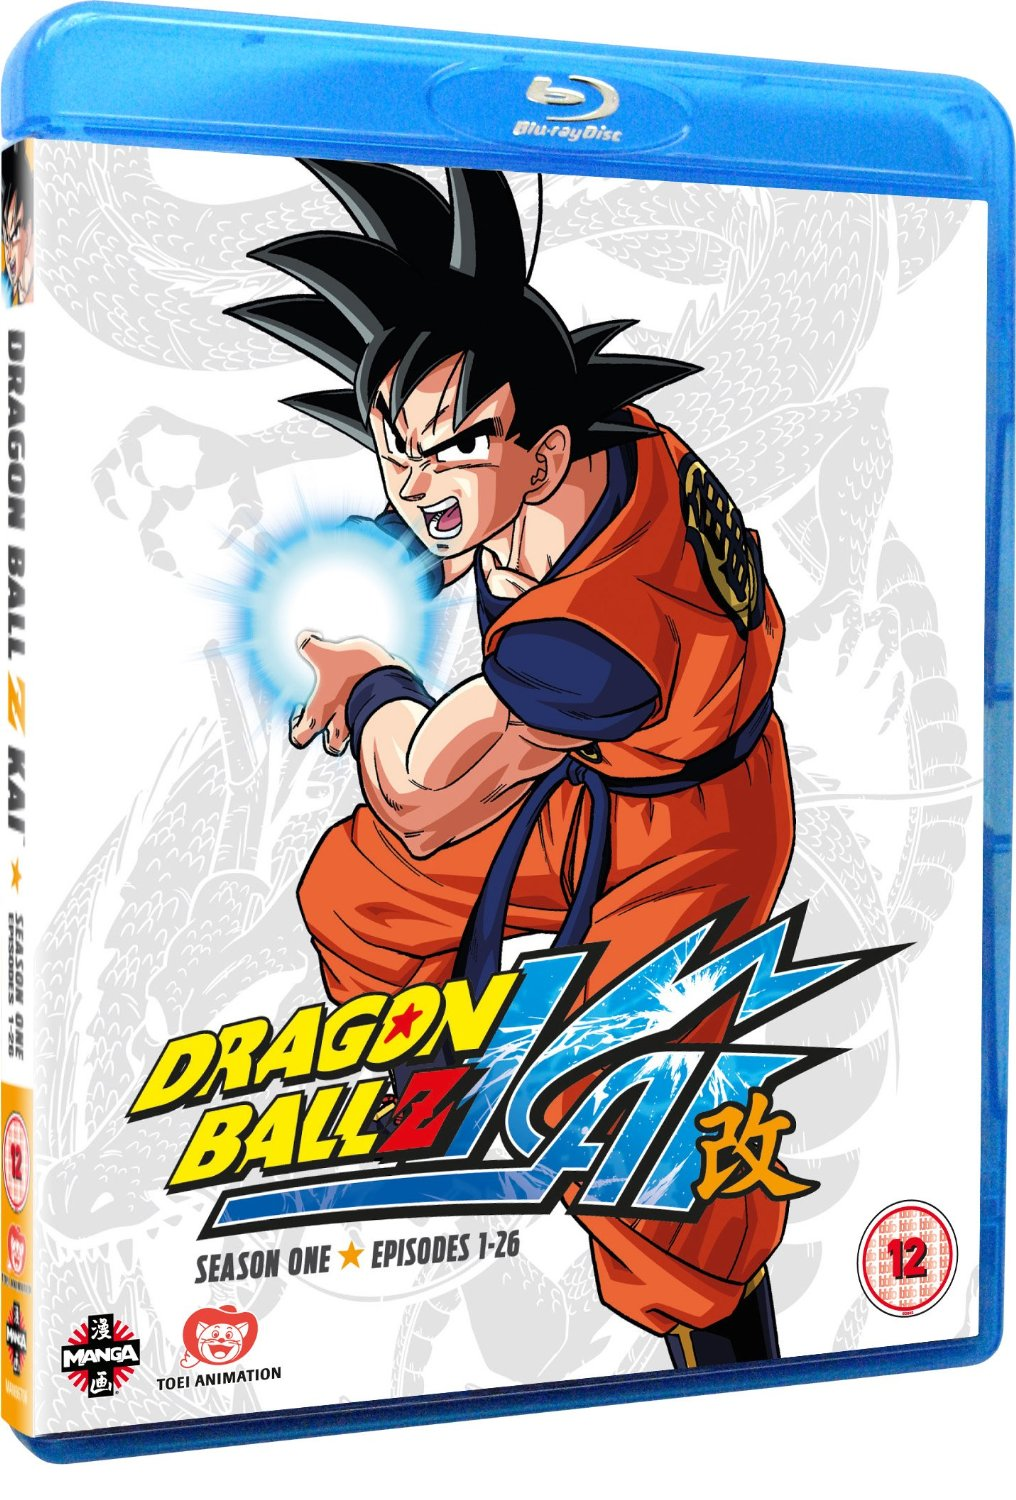 Dragon Ball Z Kai Season 1 review: Goku's gamble